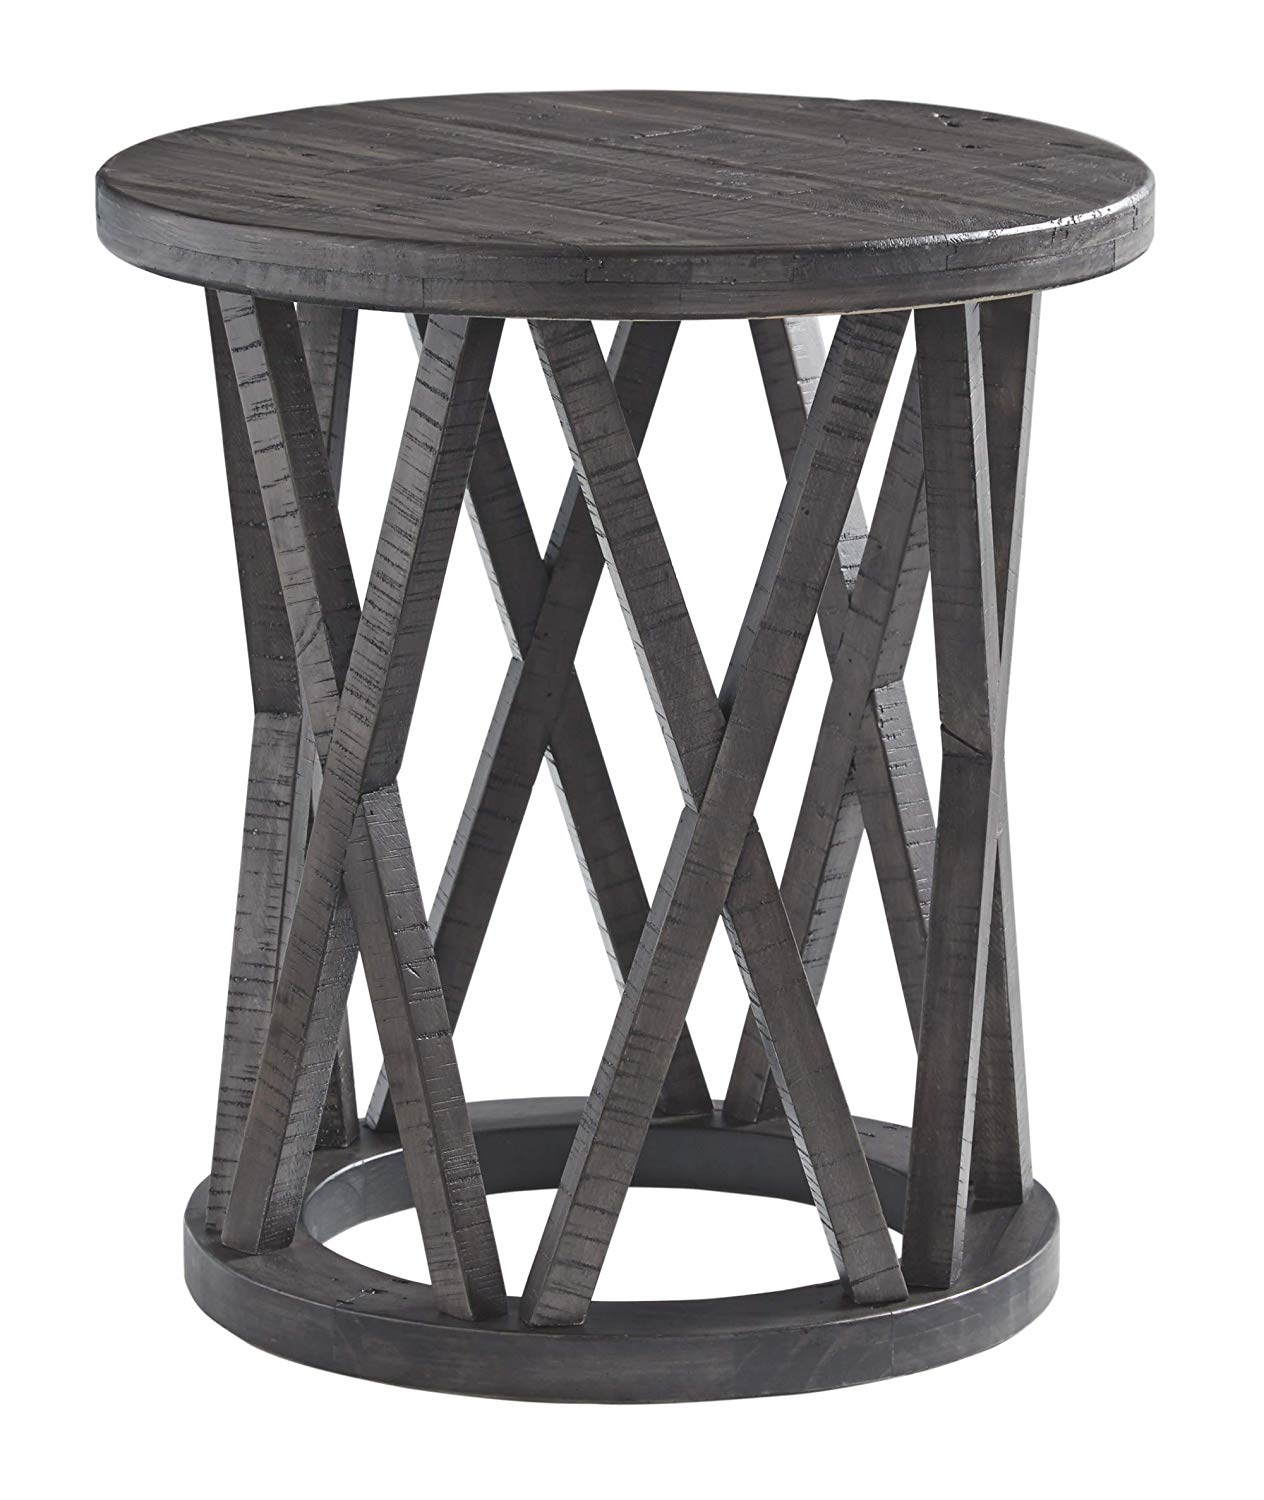 signature design ashley sharzane round end table grayish brown kitchen dining kmart indoor outdoor rugs artemide ceiling light black contemporary tables homesense watford jobs dog